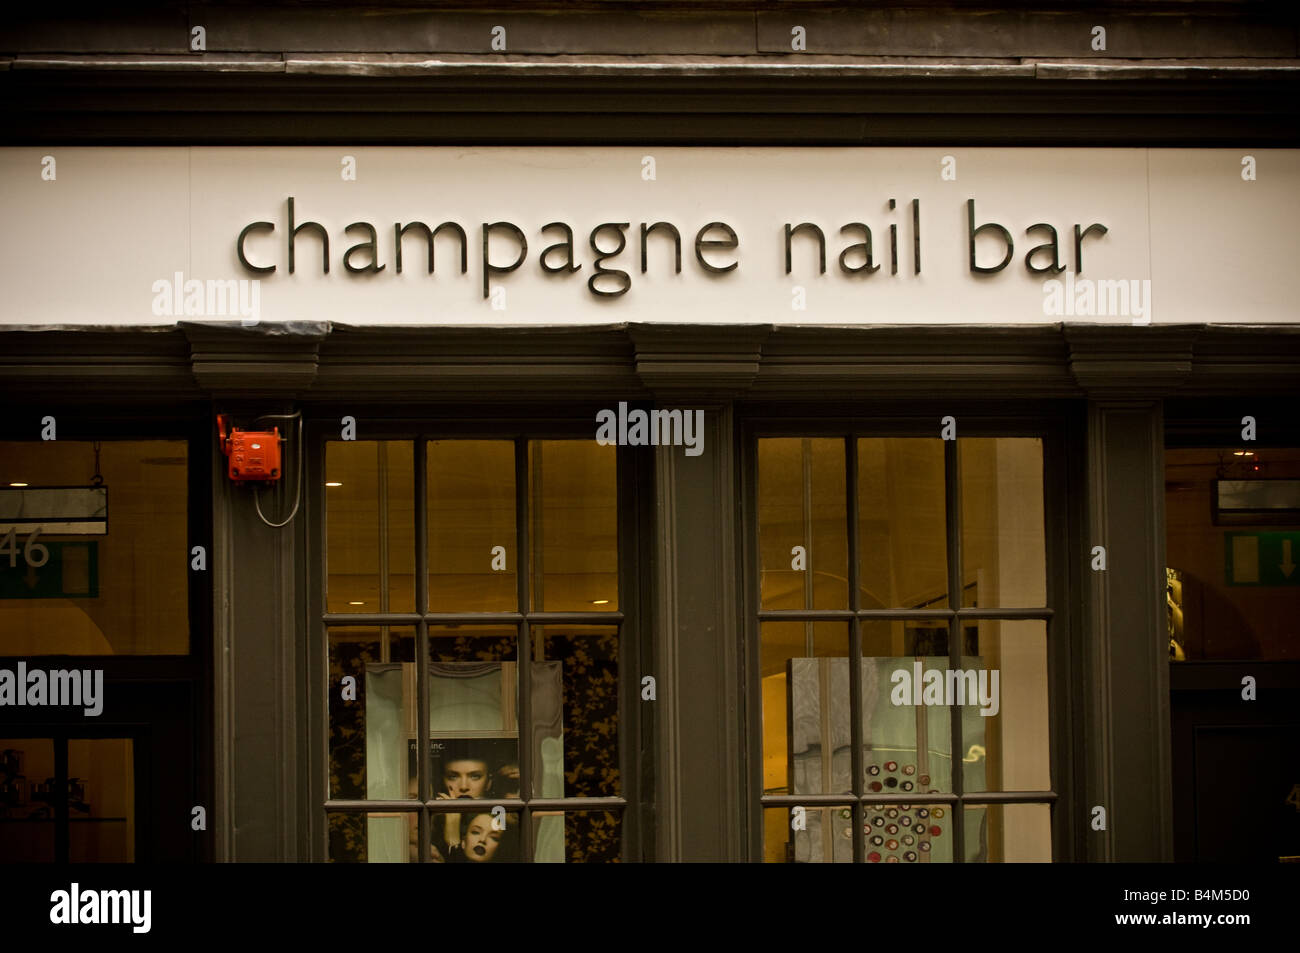 Champagne Nail Bar Sign On Shop Front London UK